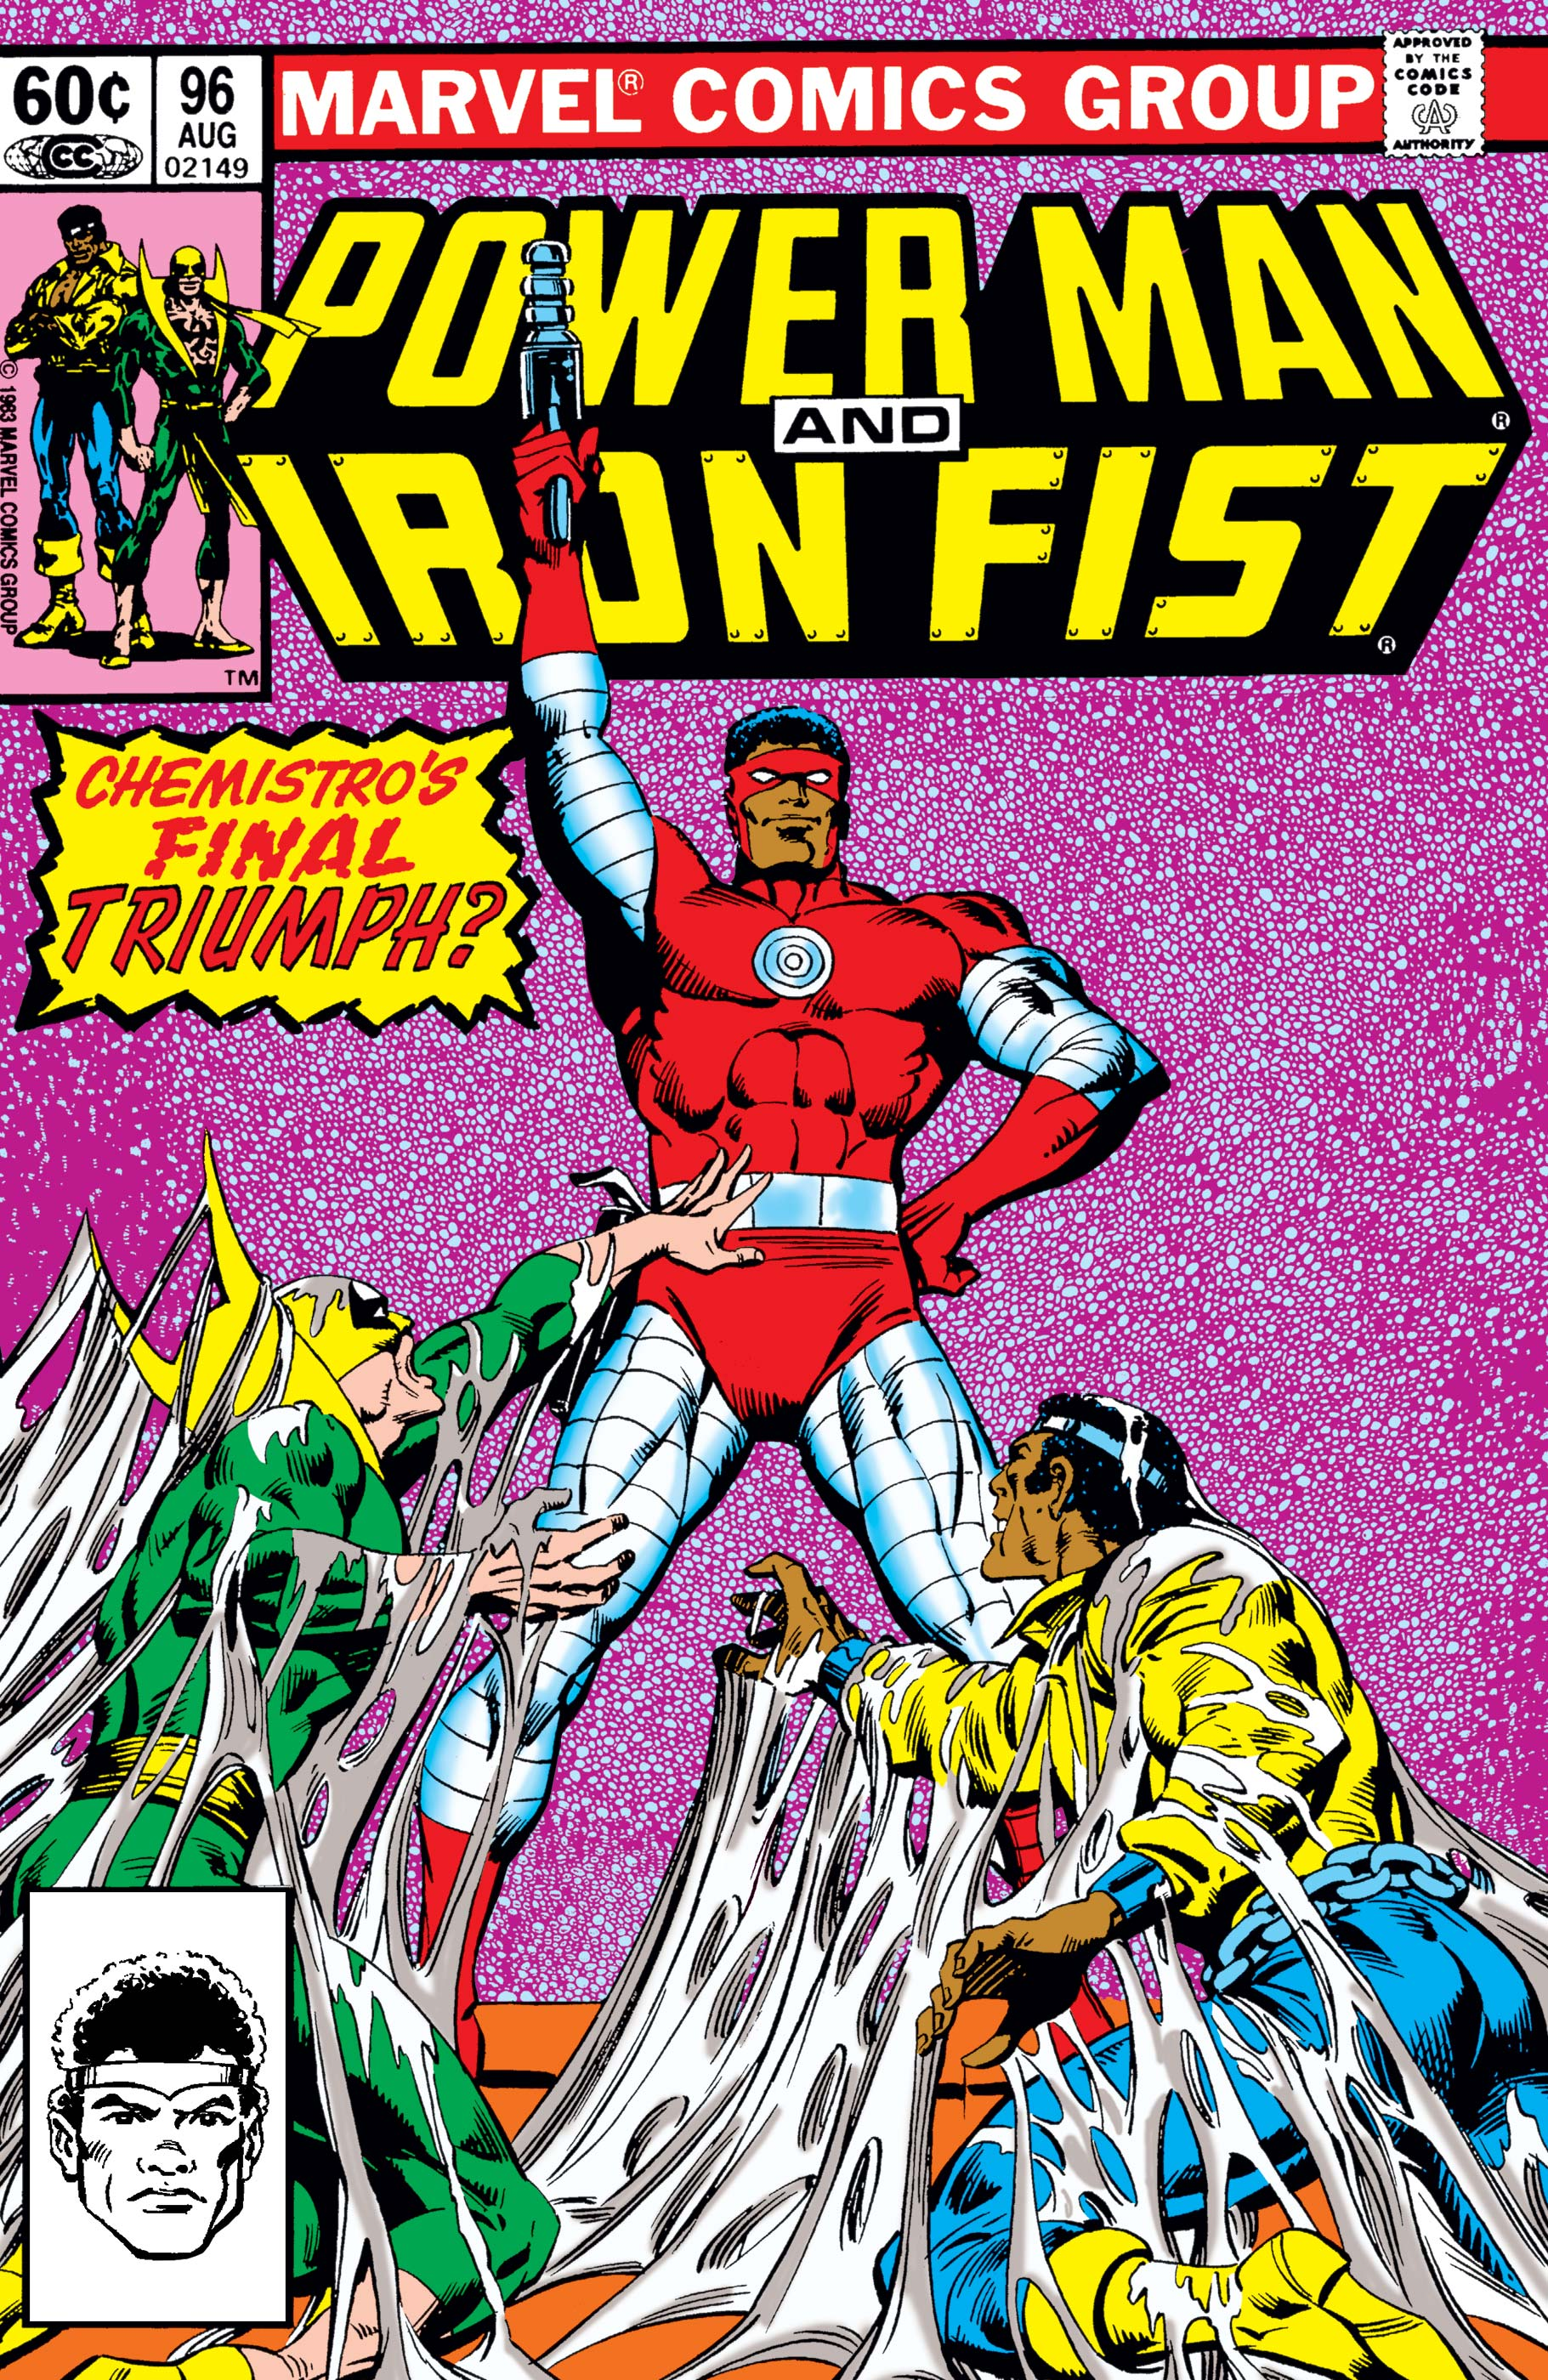 Power Man and Iron Fist (1978) #96